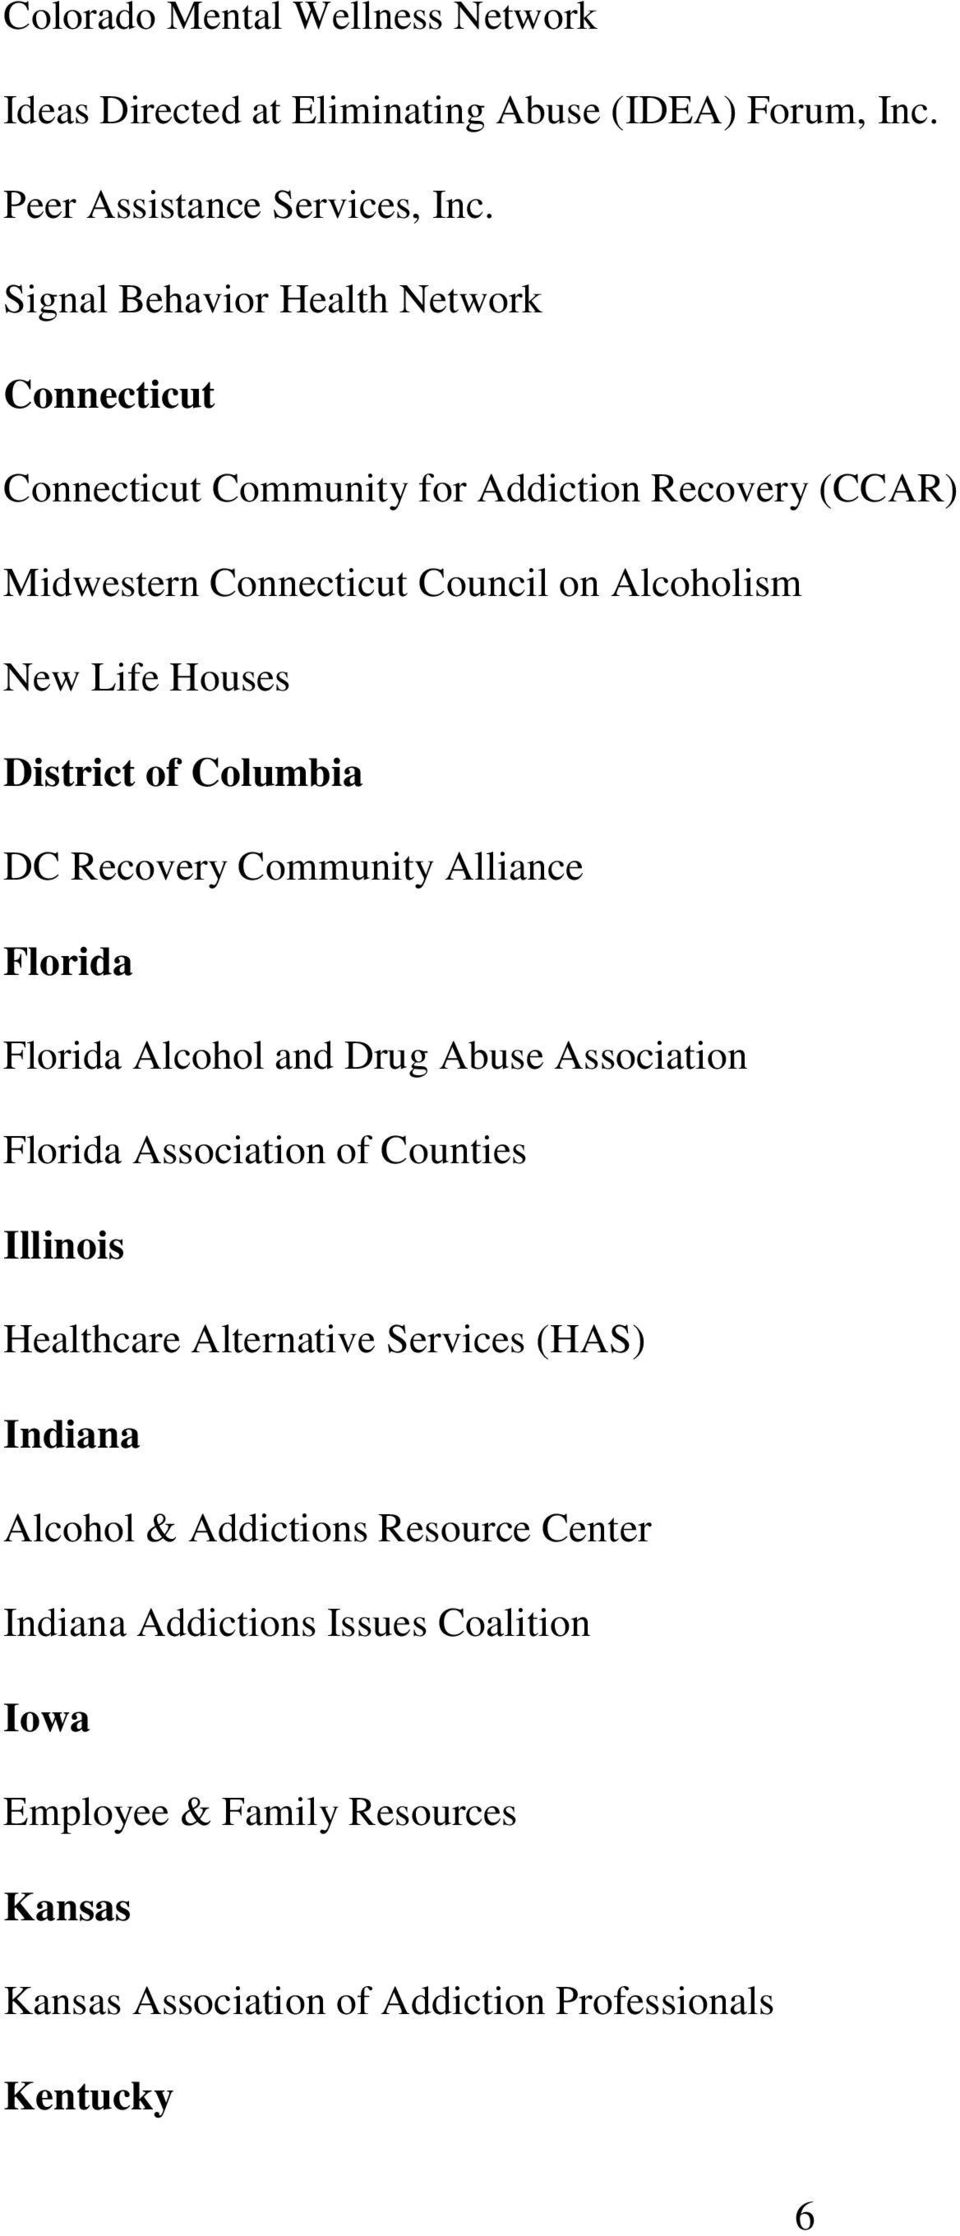 District of Columbia DC Recovery Community Alliance Florida Florida Alcohol and Drug Abuse Association Florida Association of Counties Illinois Healthcare